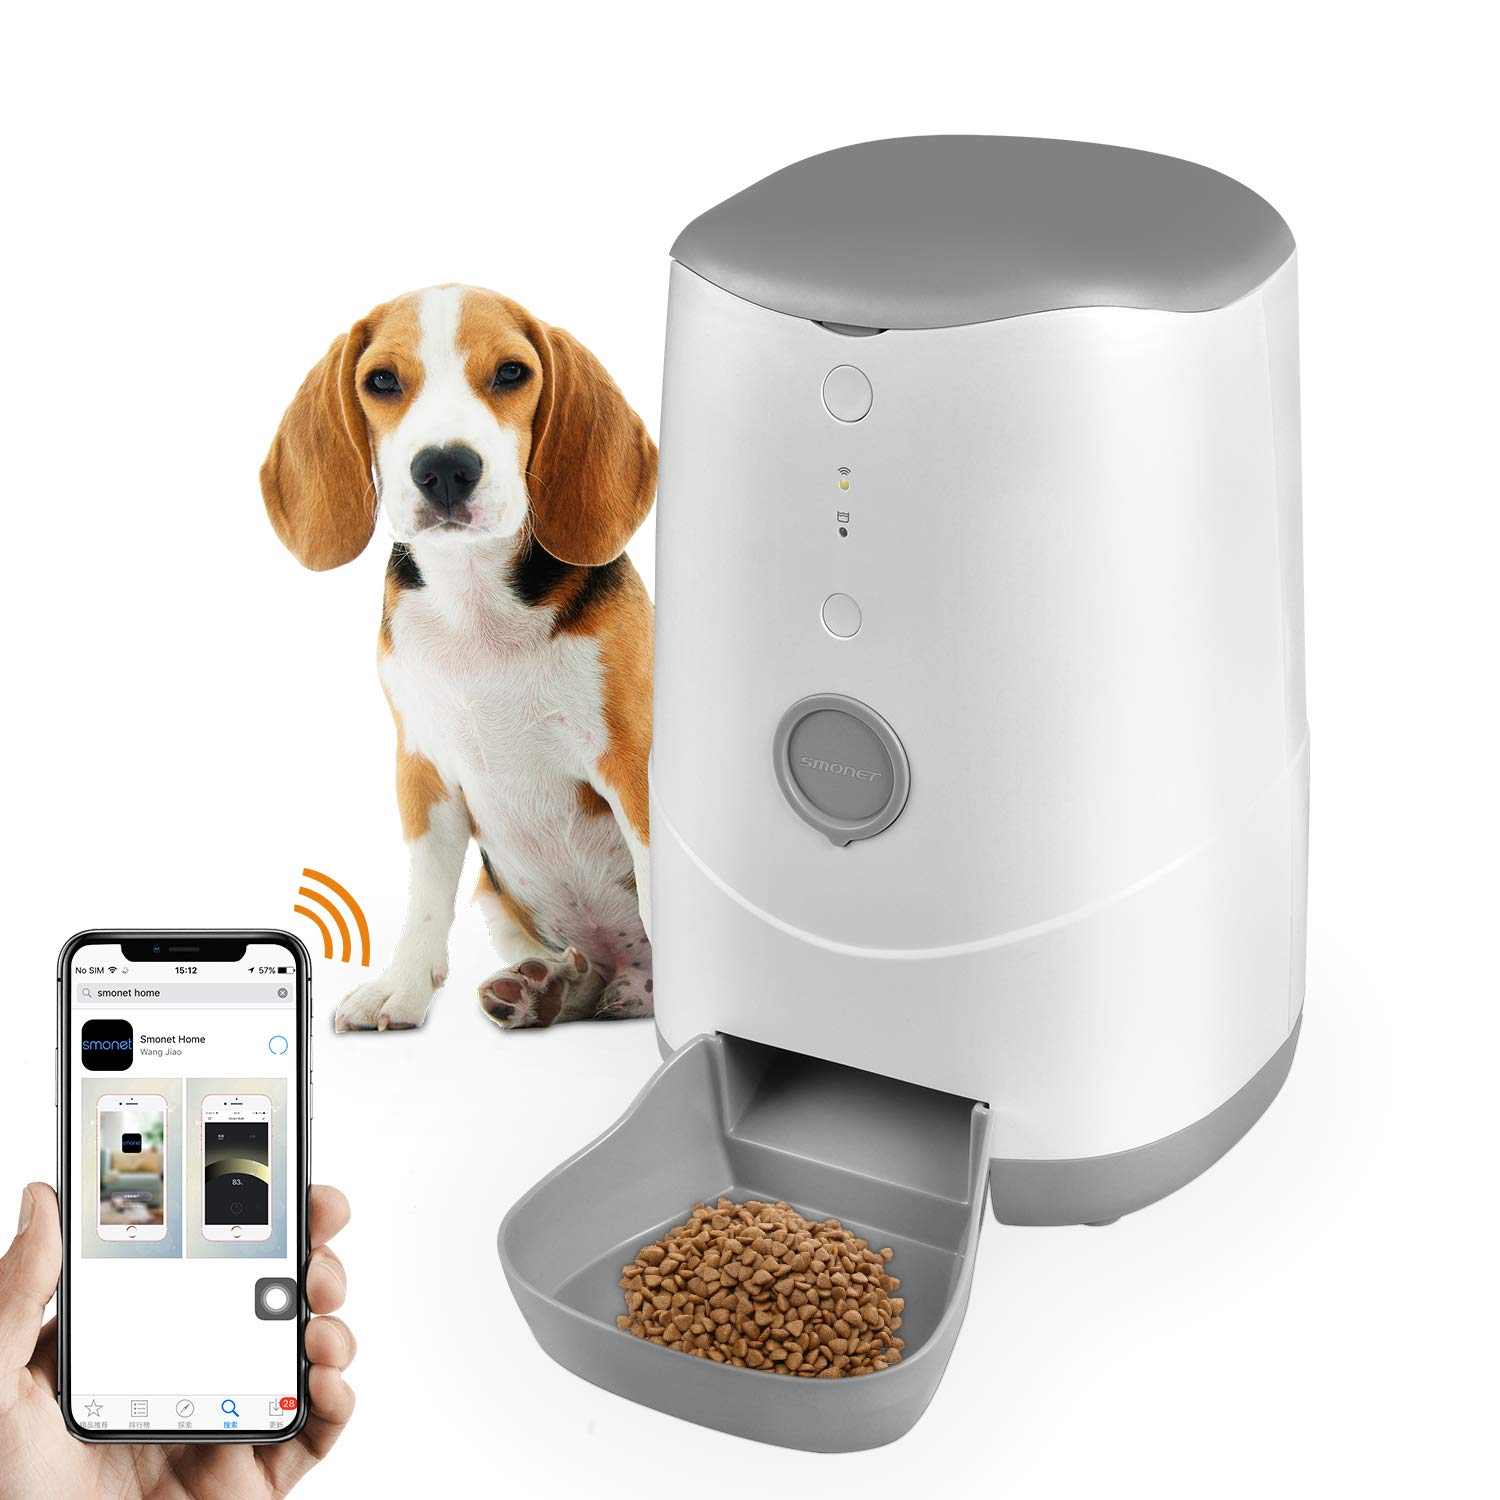 SMONET Automatic Pet Feeder Food Dispenser for Dogs, Cats, 3.7L Large Capacity, Free App Support iPhone&Android,Easy to Clean by SMONET